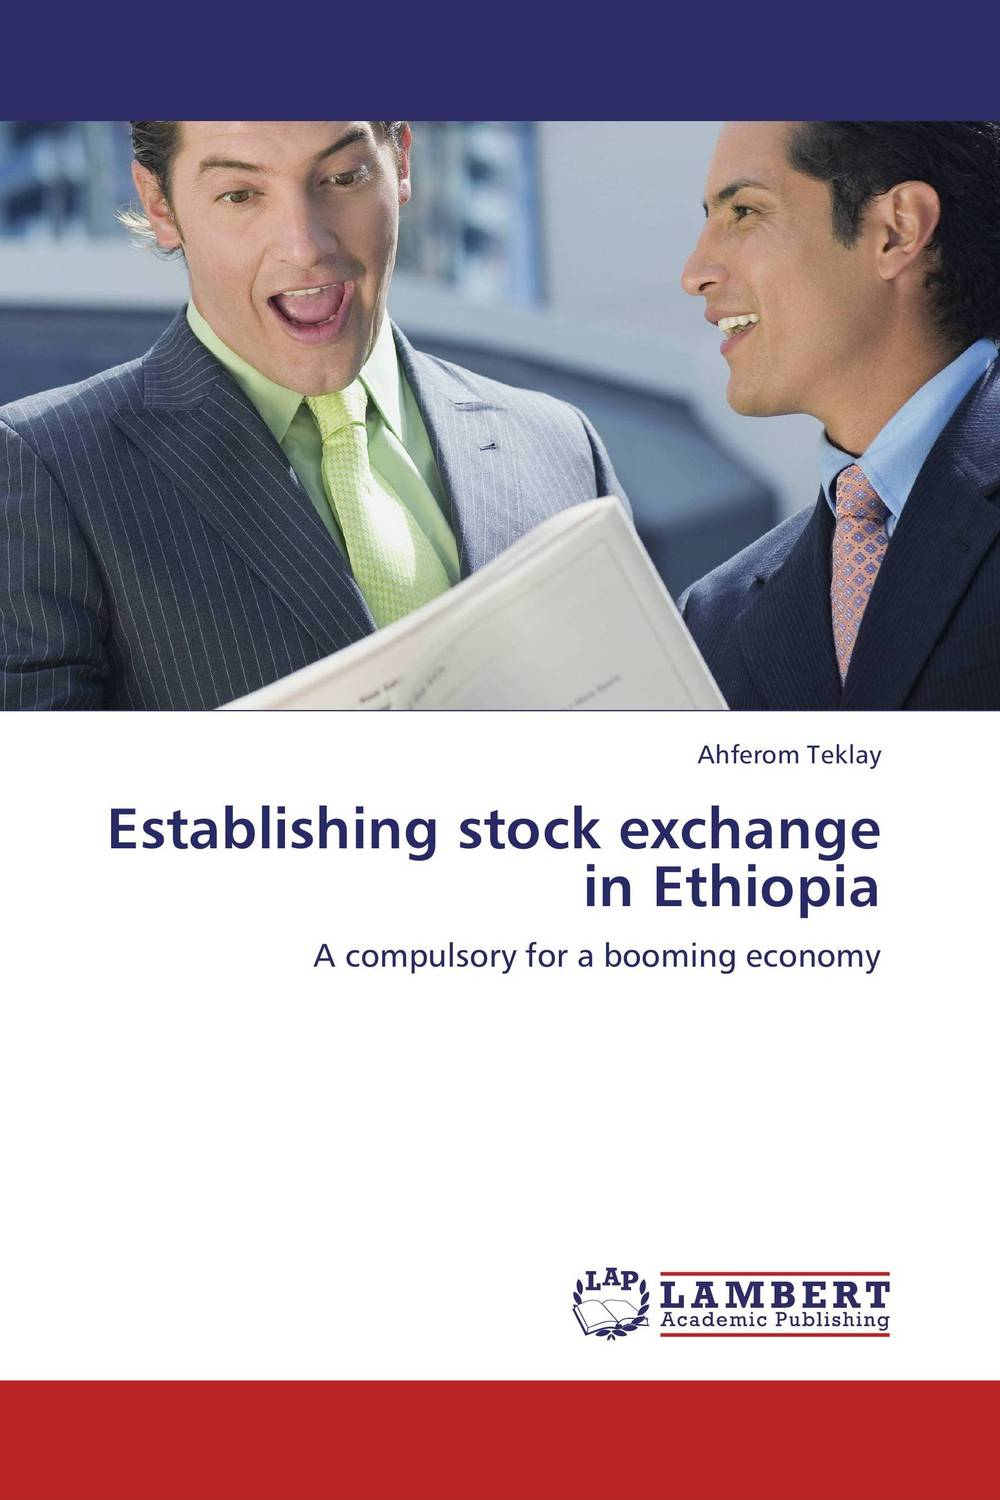 Establishing stock exchange in Ethiopia